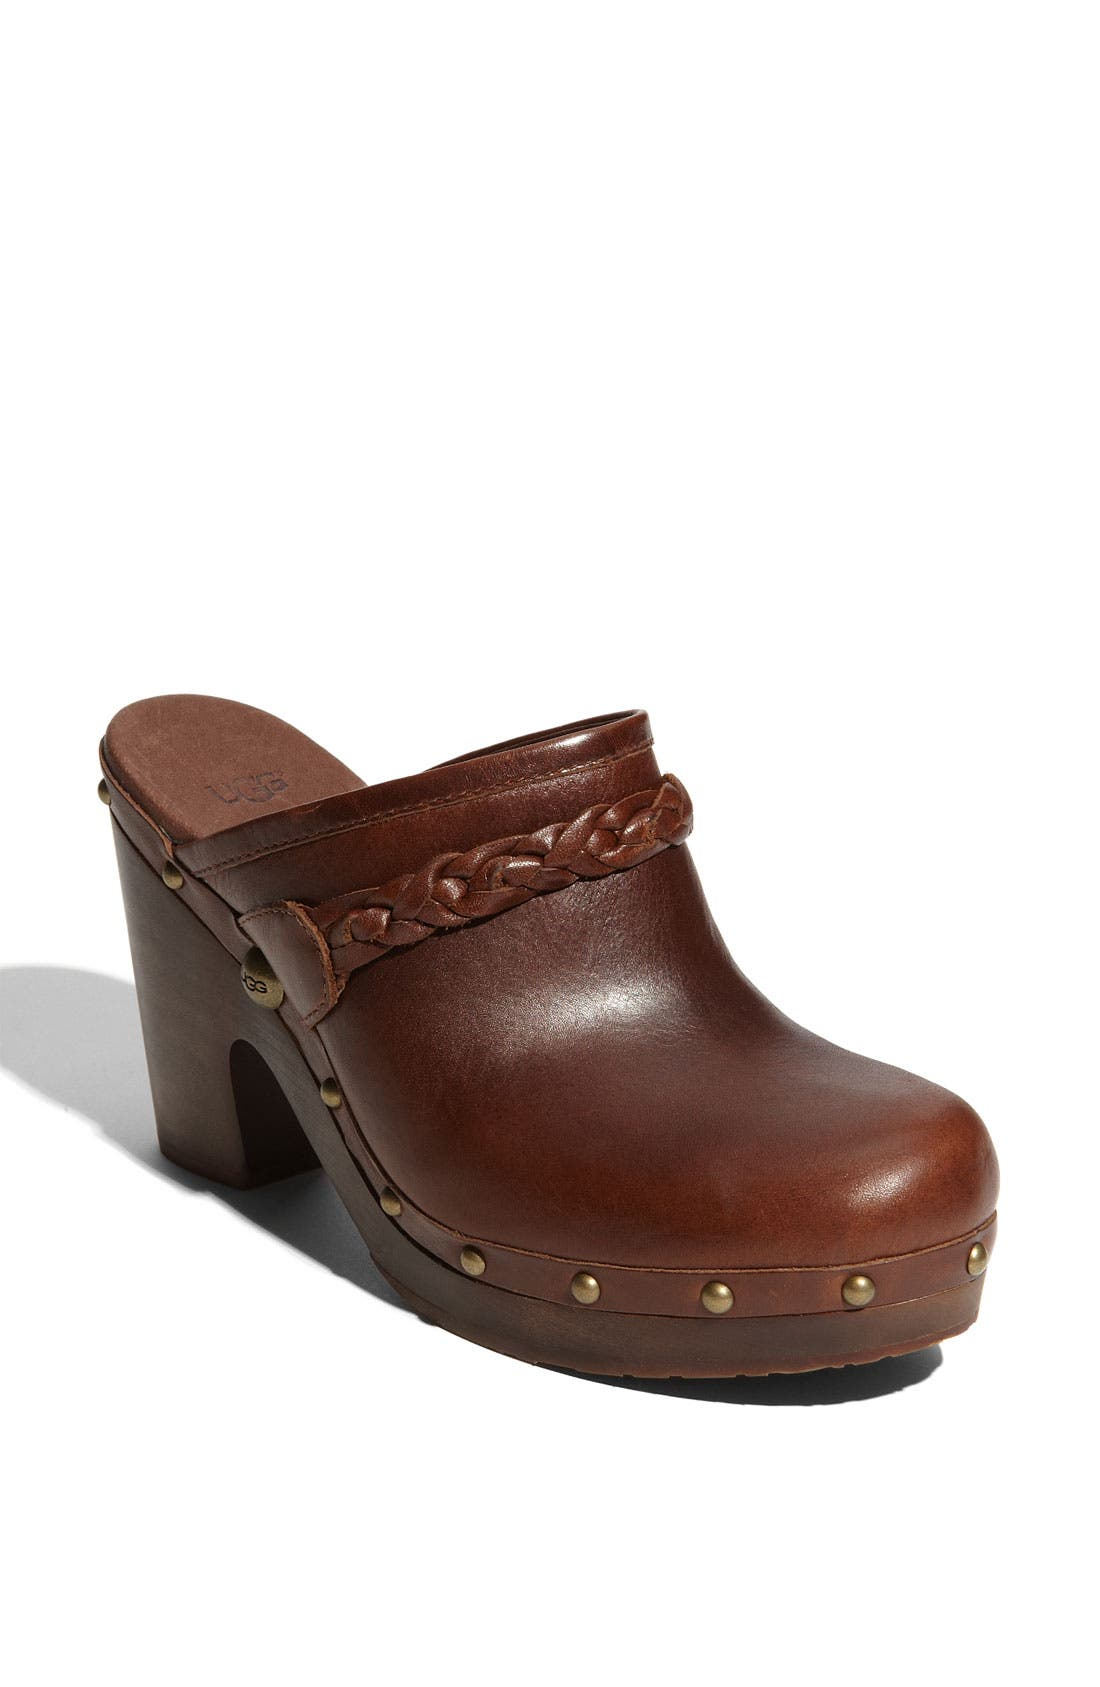 Alternate Image 1 Selected - UGG® Australia 'Kaylee' Clog